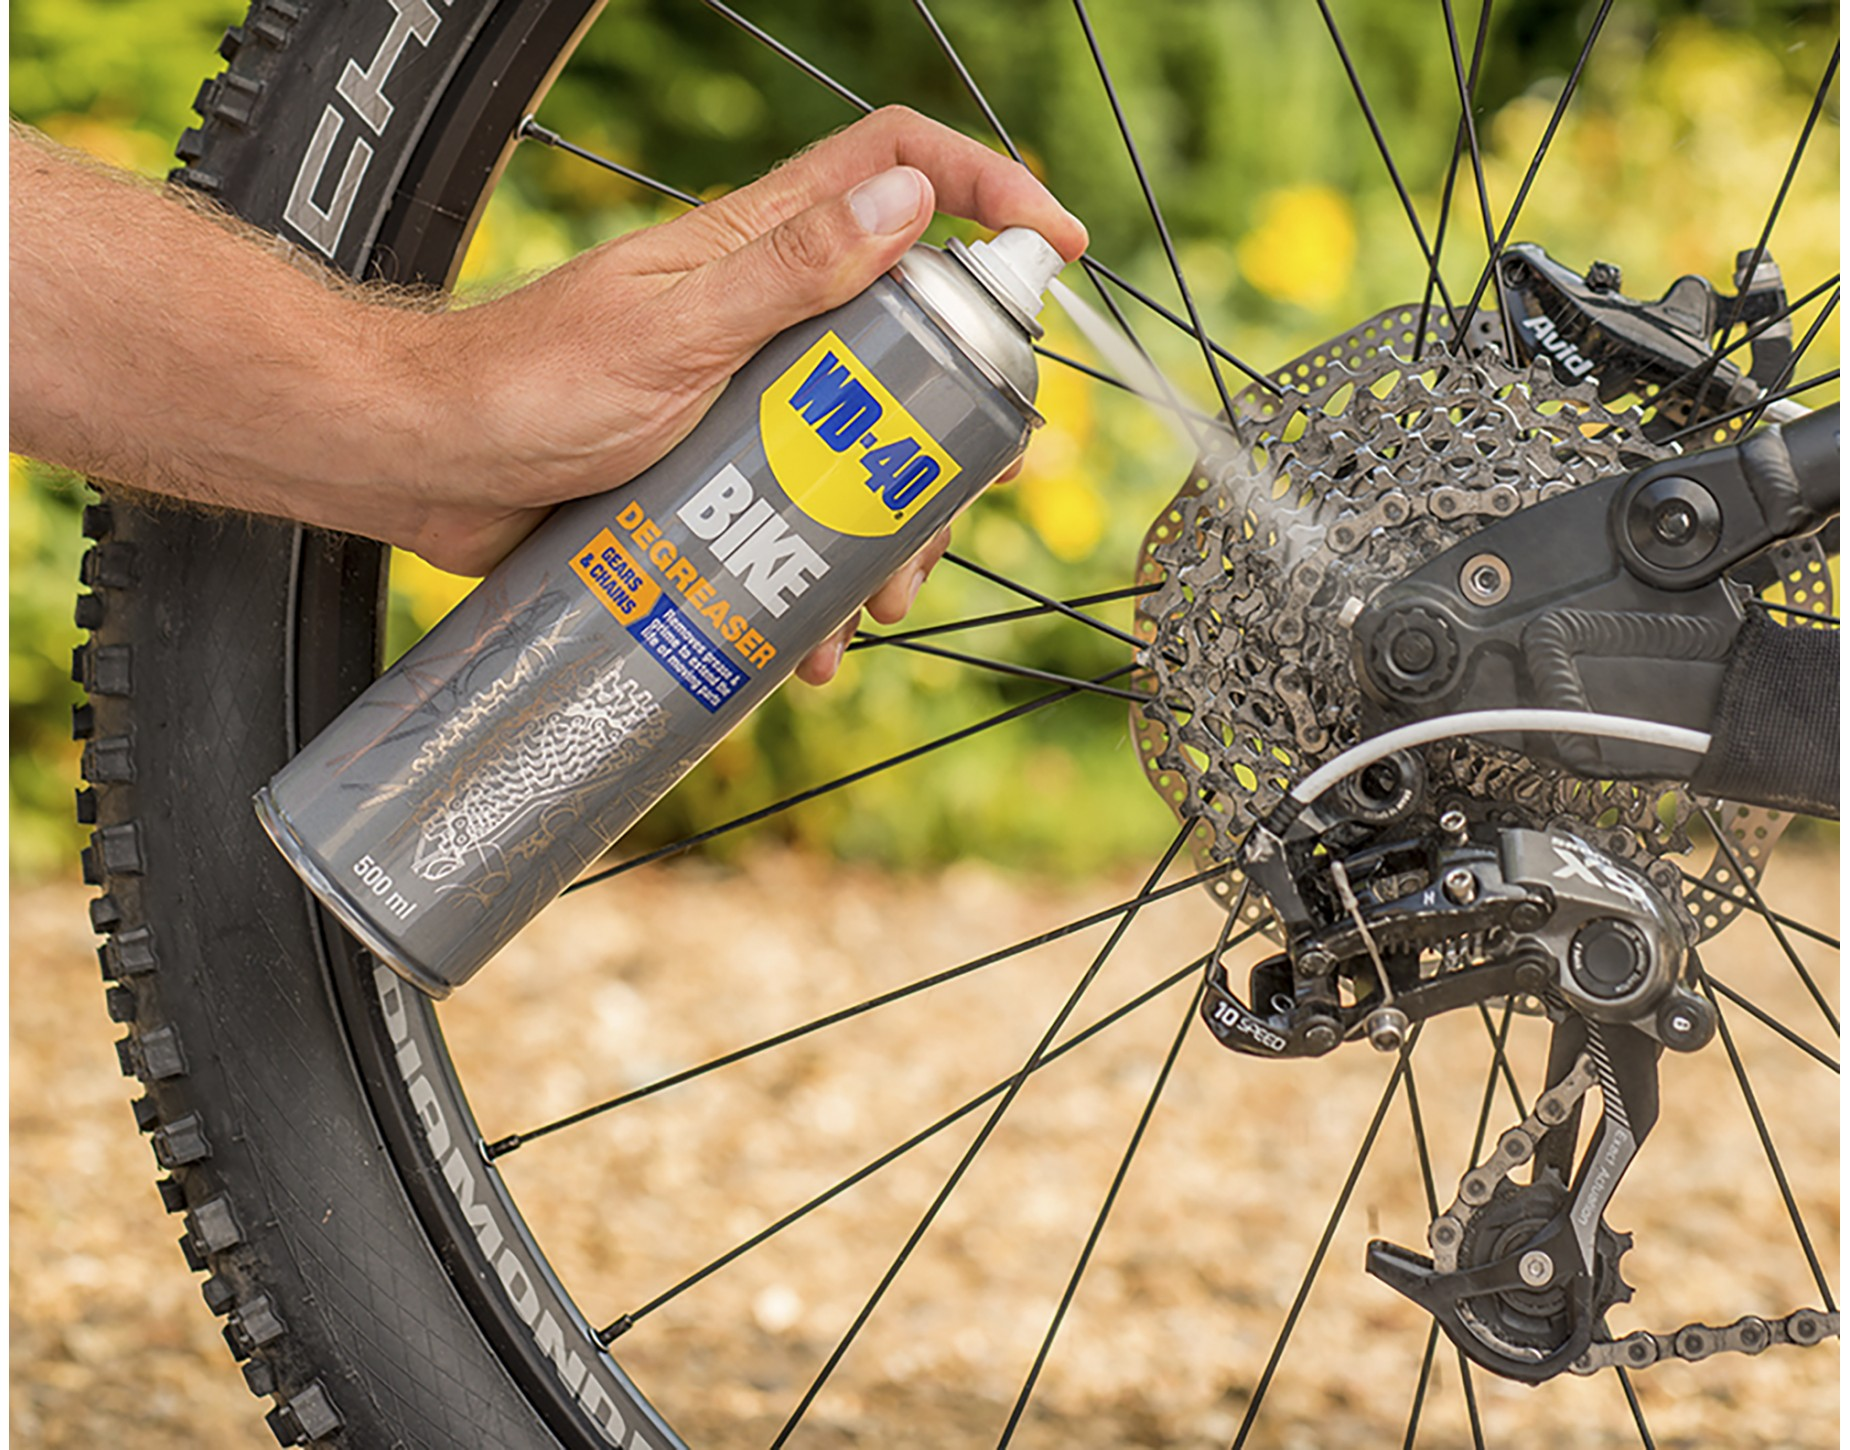 wd 40 bike chain cleaning spray offers at the cycling shop. Black Bedroom Furniture Sets. Home Design Ideas